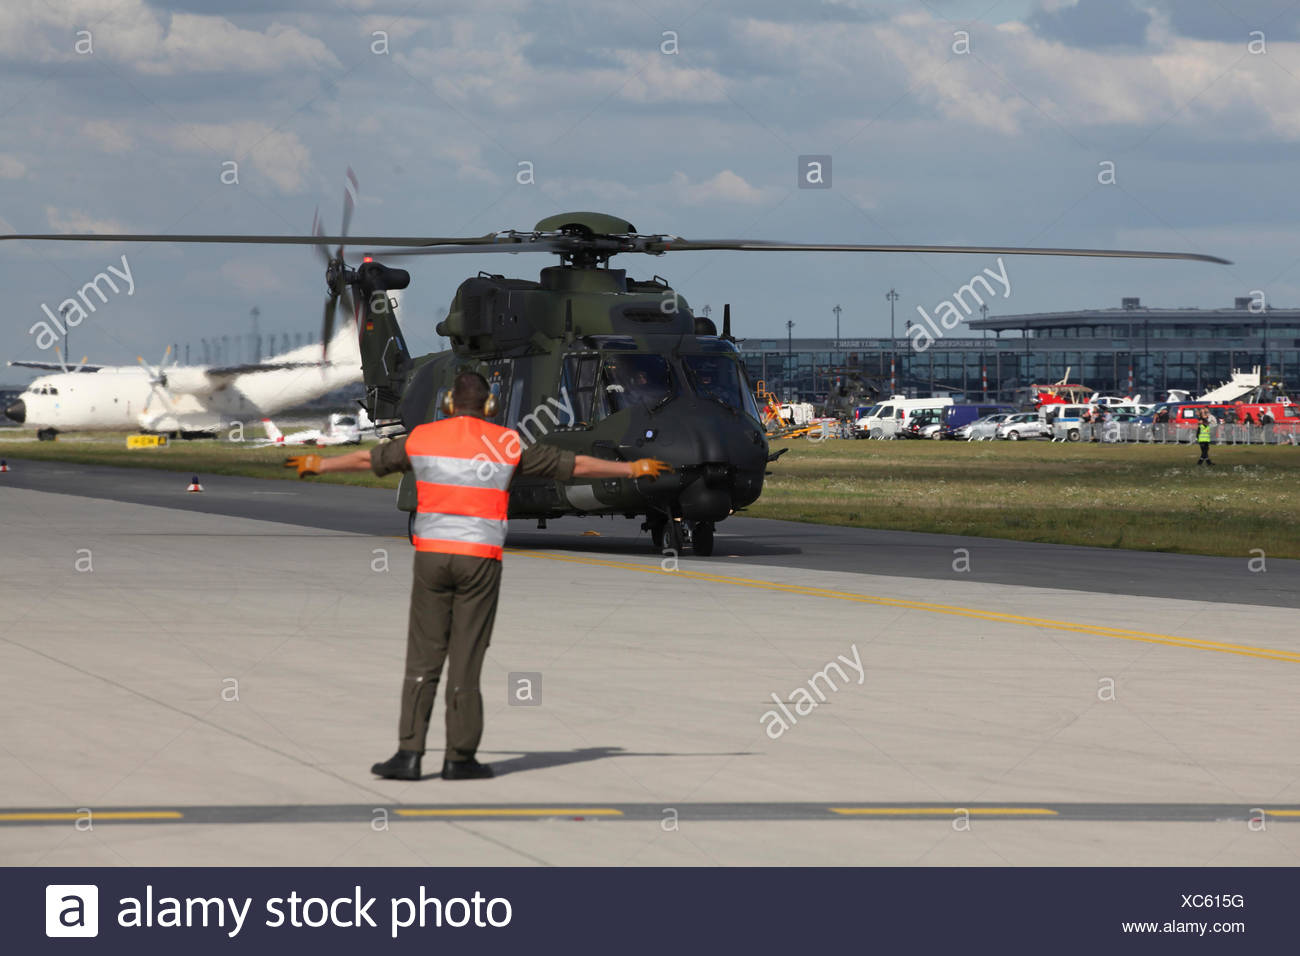 A German military helicopter landing, ILA Berlin Air Show, Berlin - Stock Image